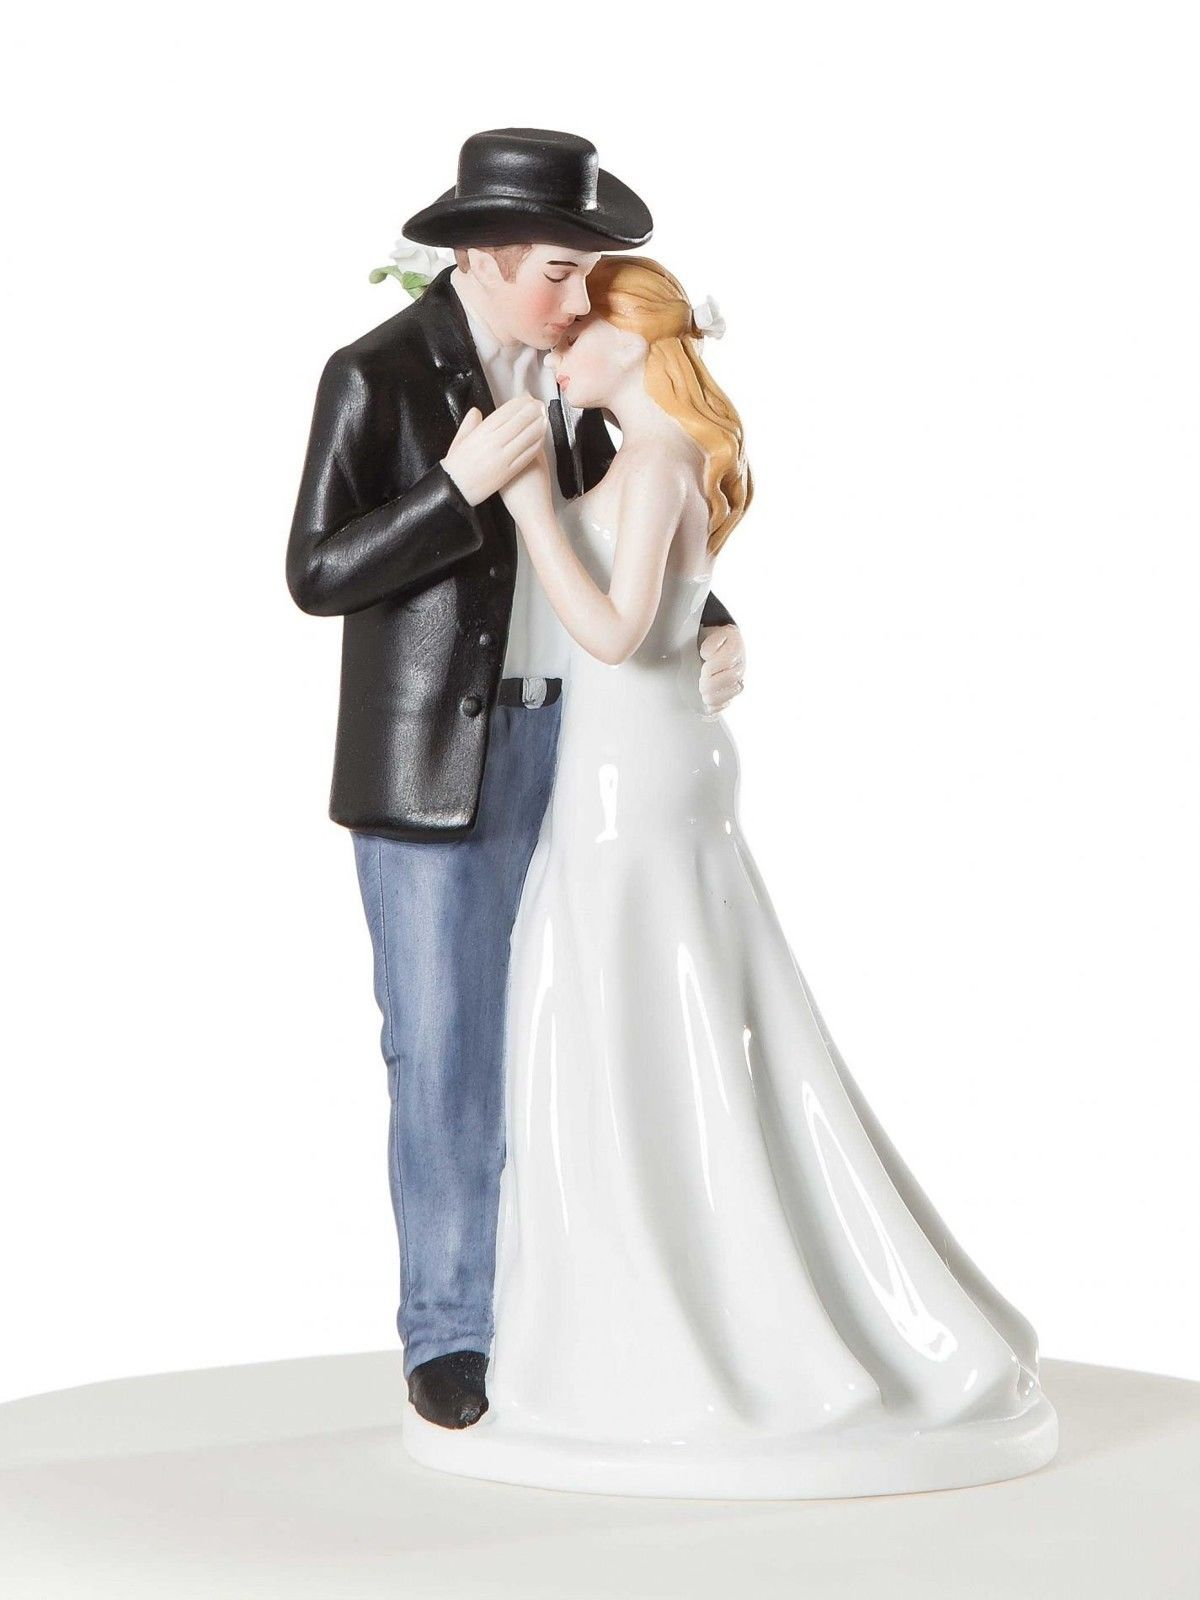 Western Wedding Cake Toppers - Shop Western Wedding Cake Toppers Online